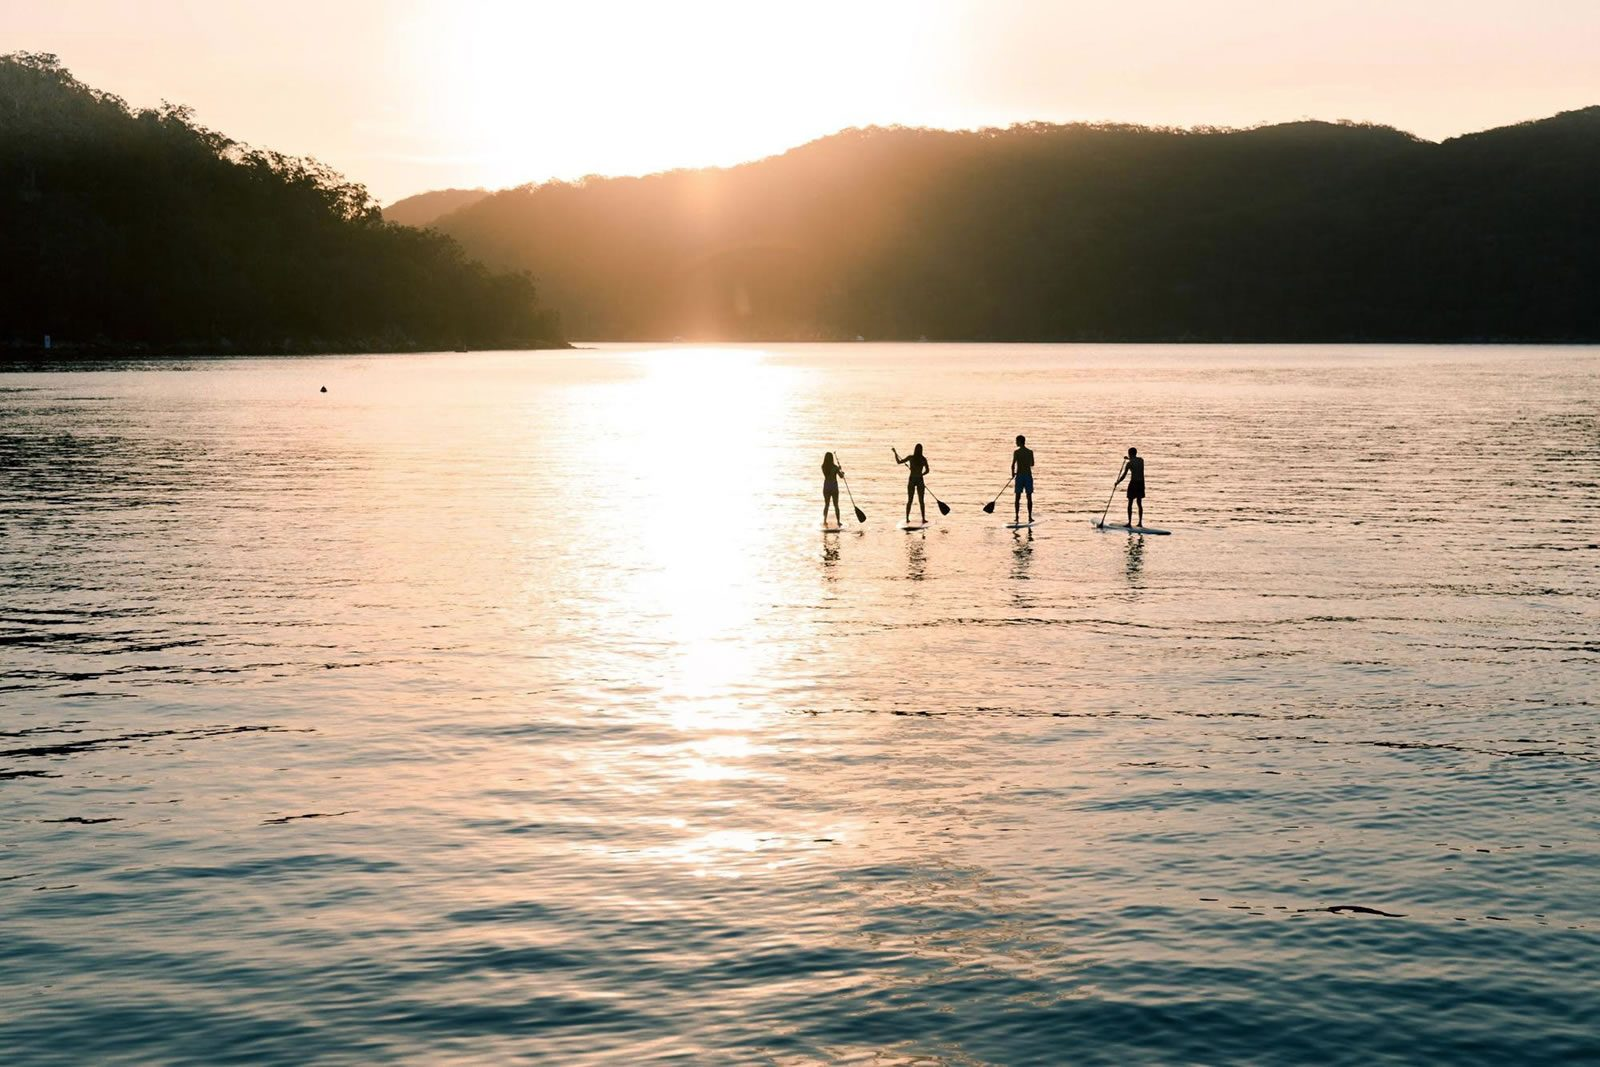 Four people stand-up paddleboarding at The Basin in Ku-ring-gai Chase National Park